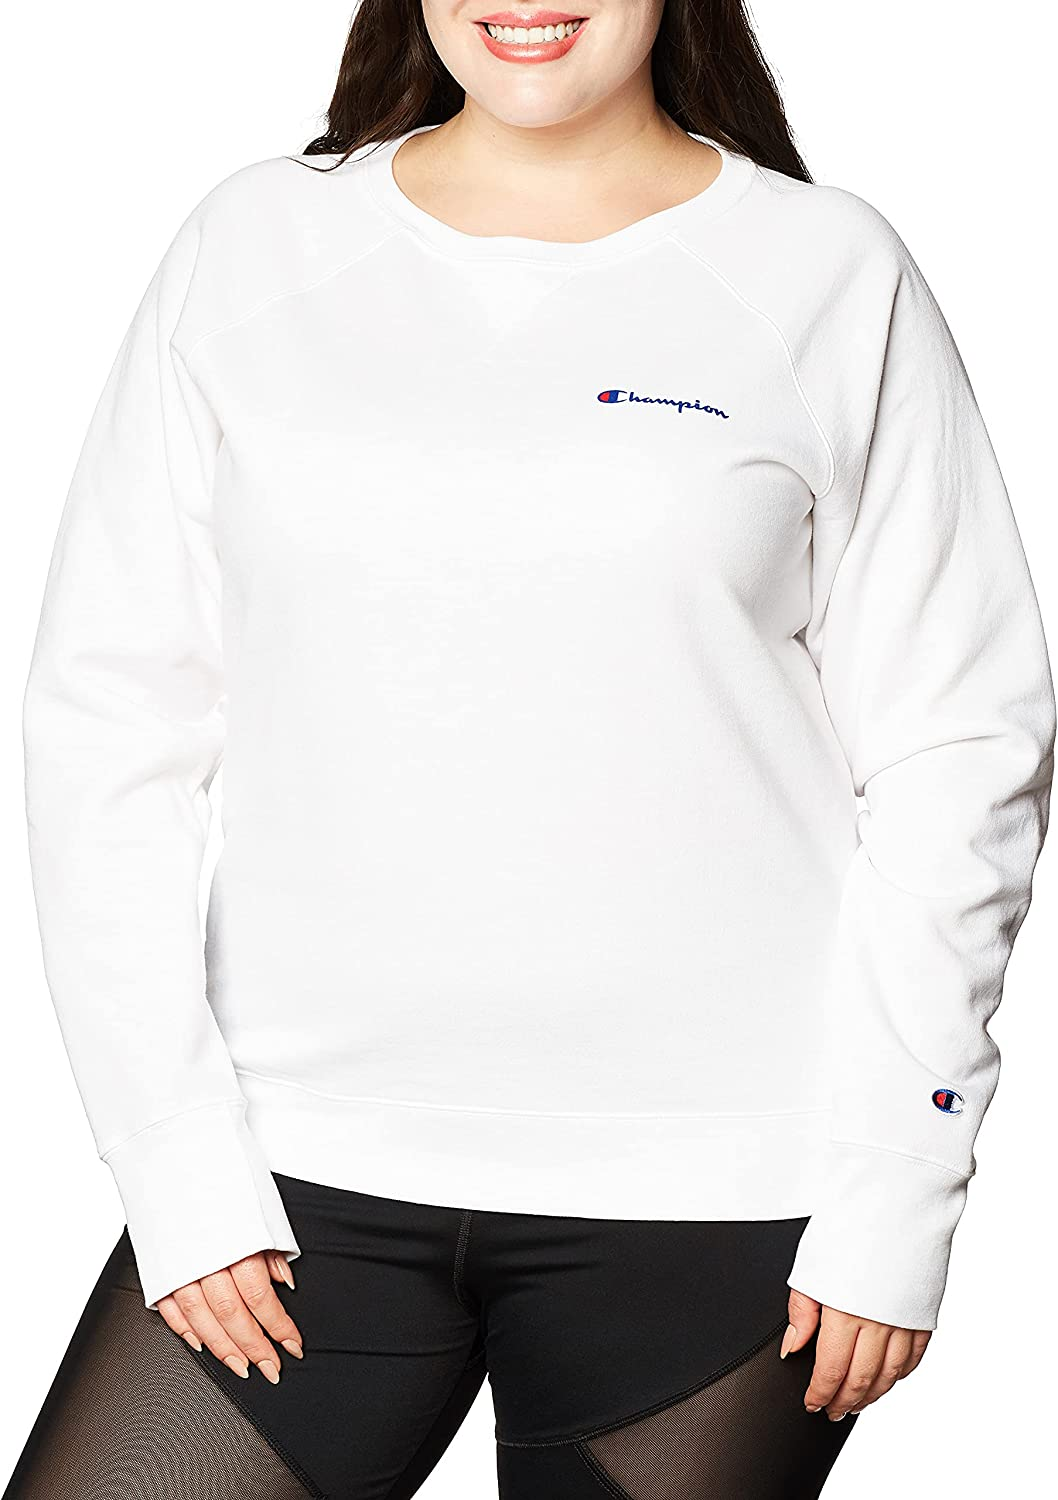 Champion Special sale item Women's Crew Powerblend Sales for sale